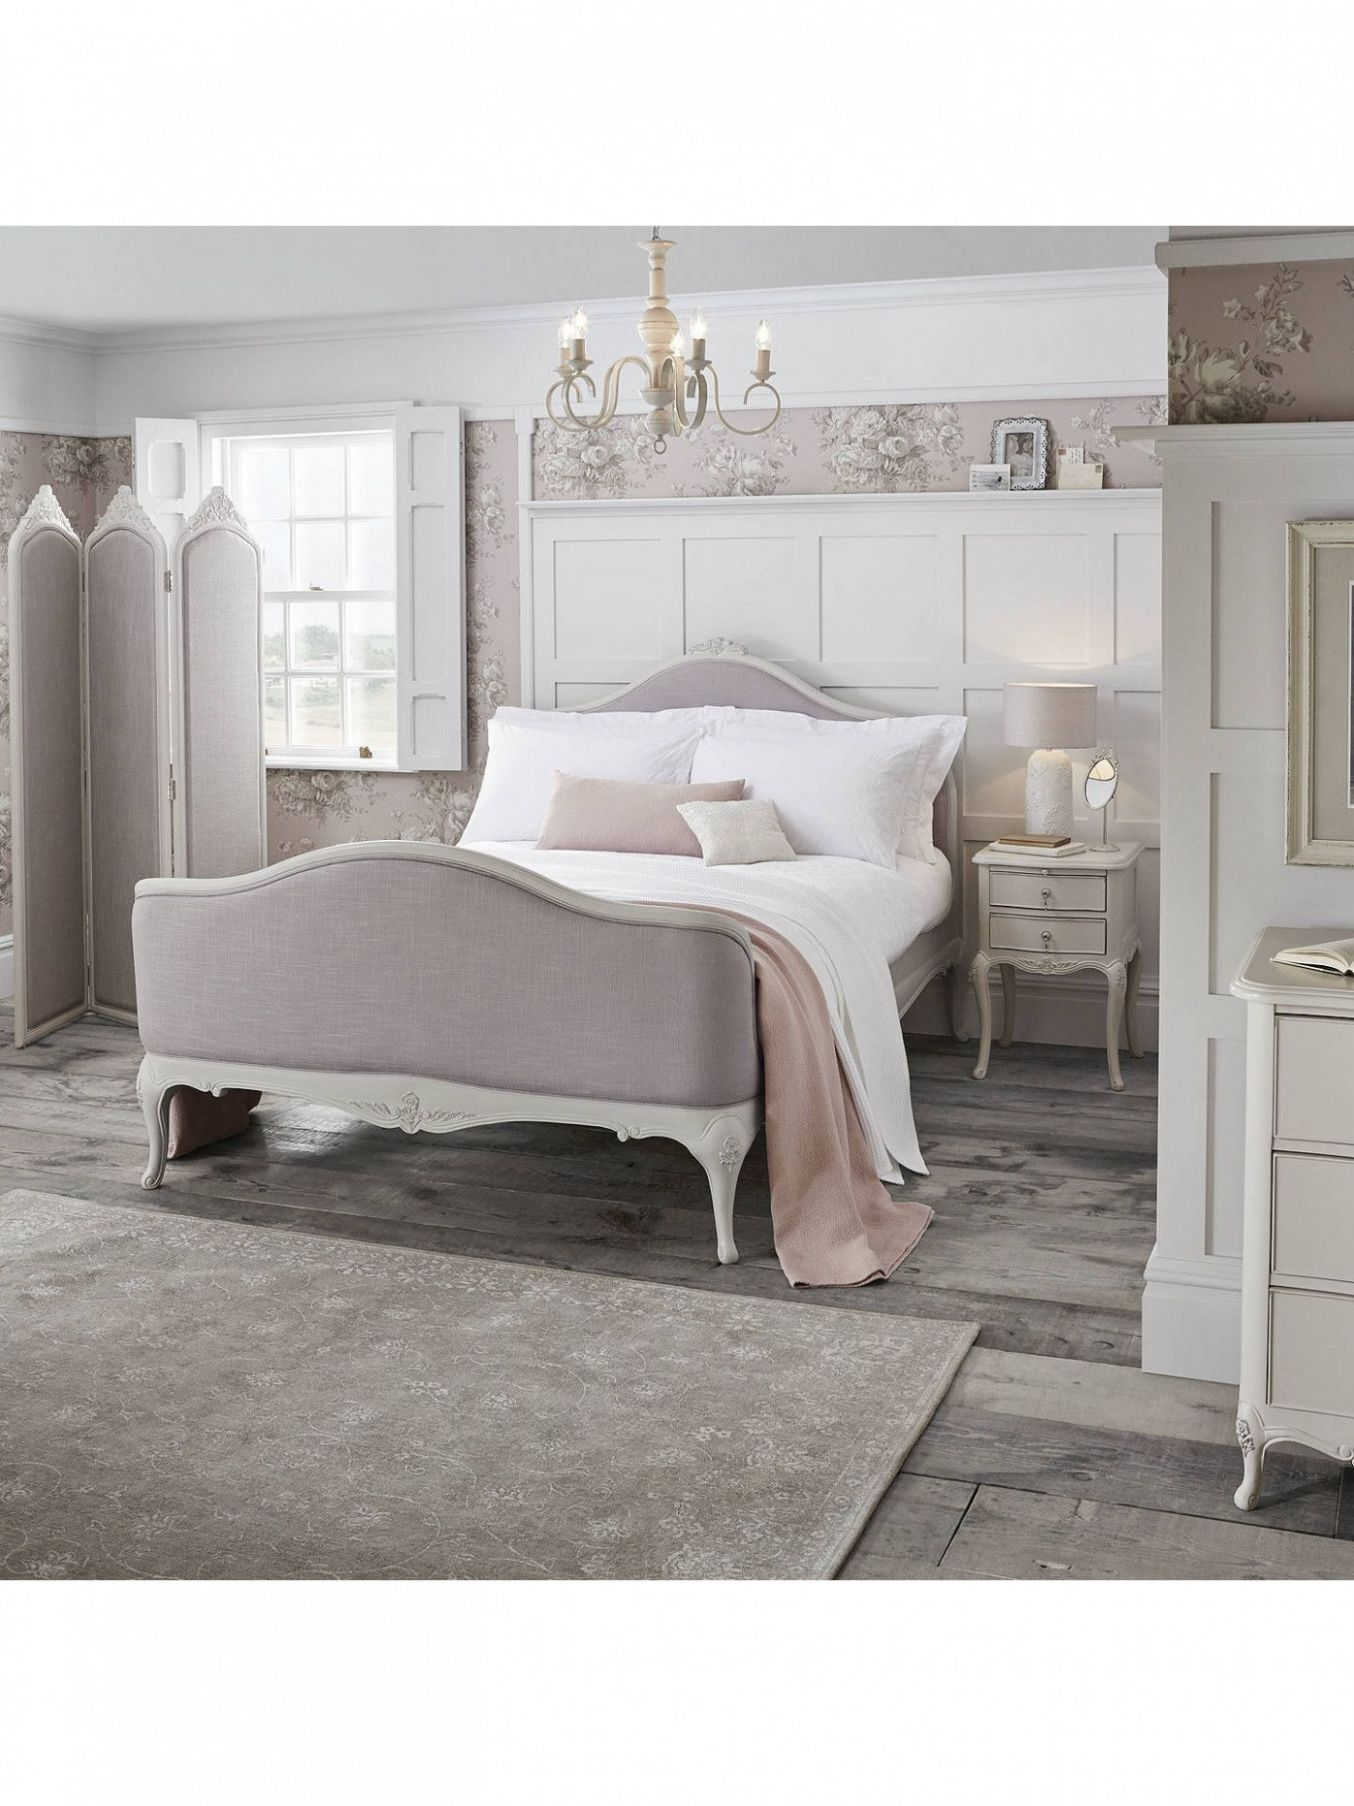 11 John Lewis Bedroom Ideas 11 John Lewis Bedroom Ideas - John ..